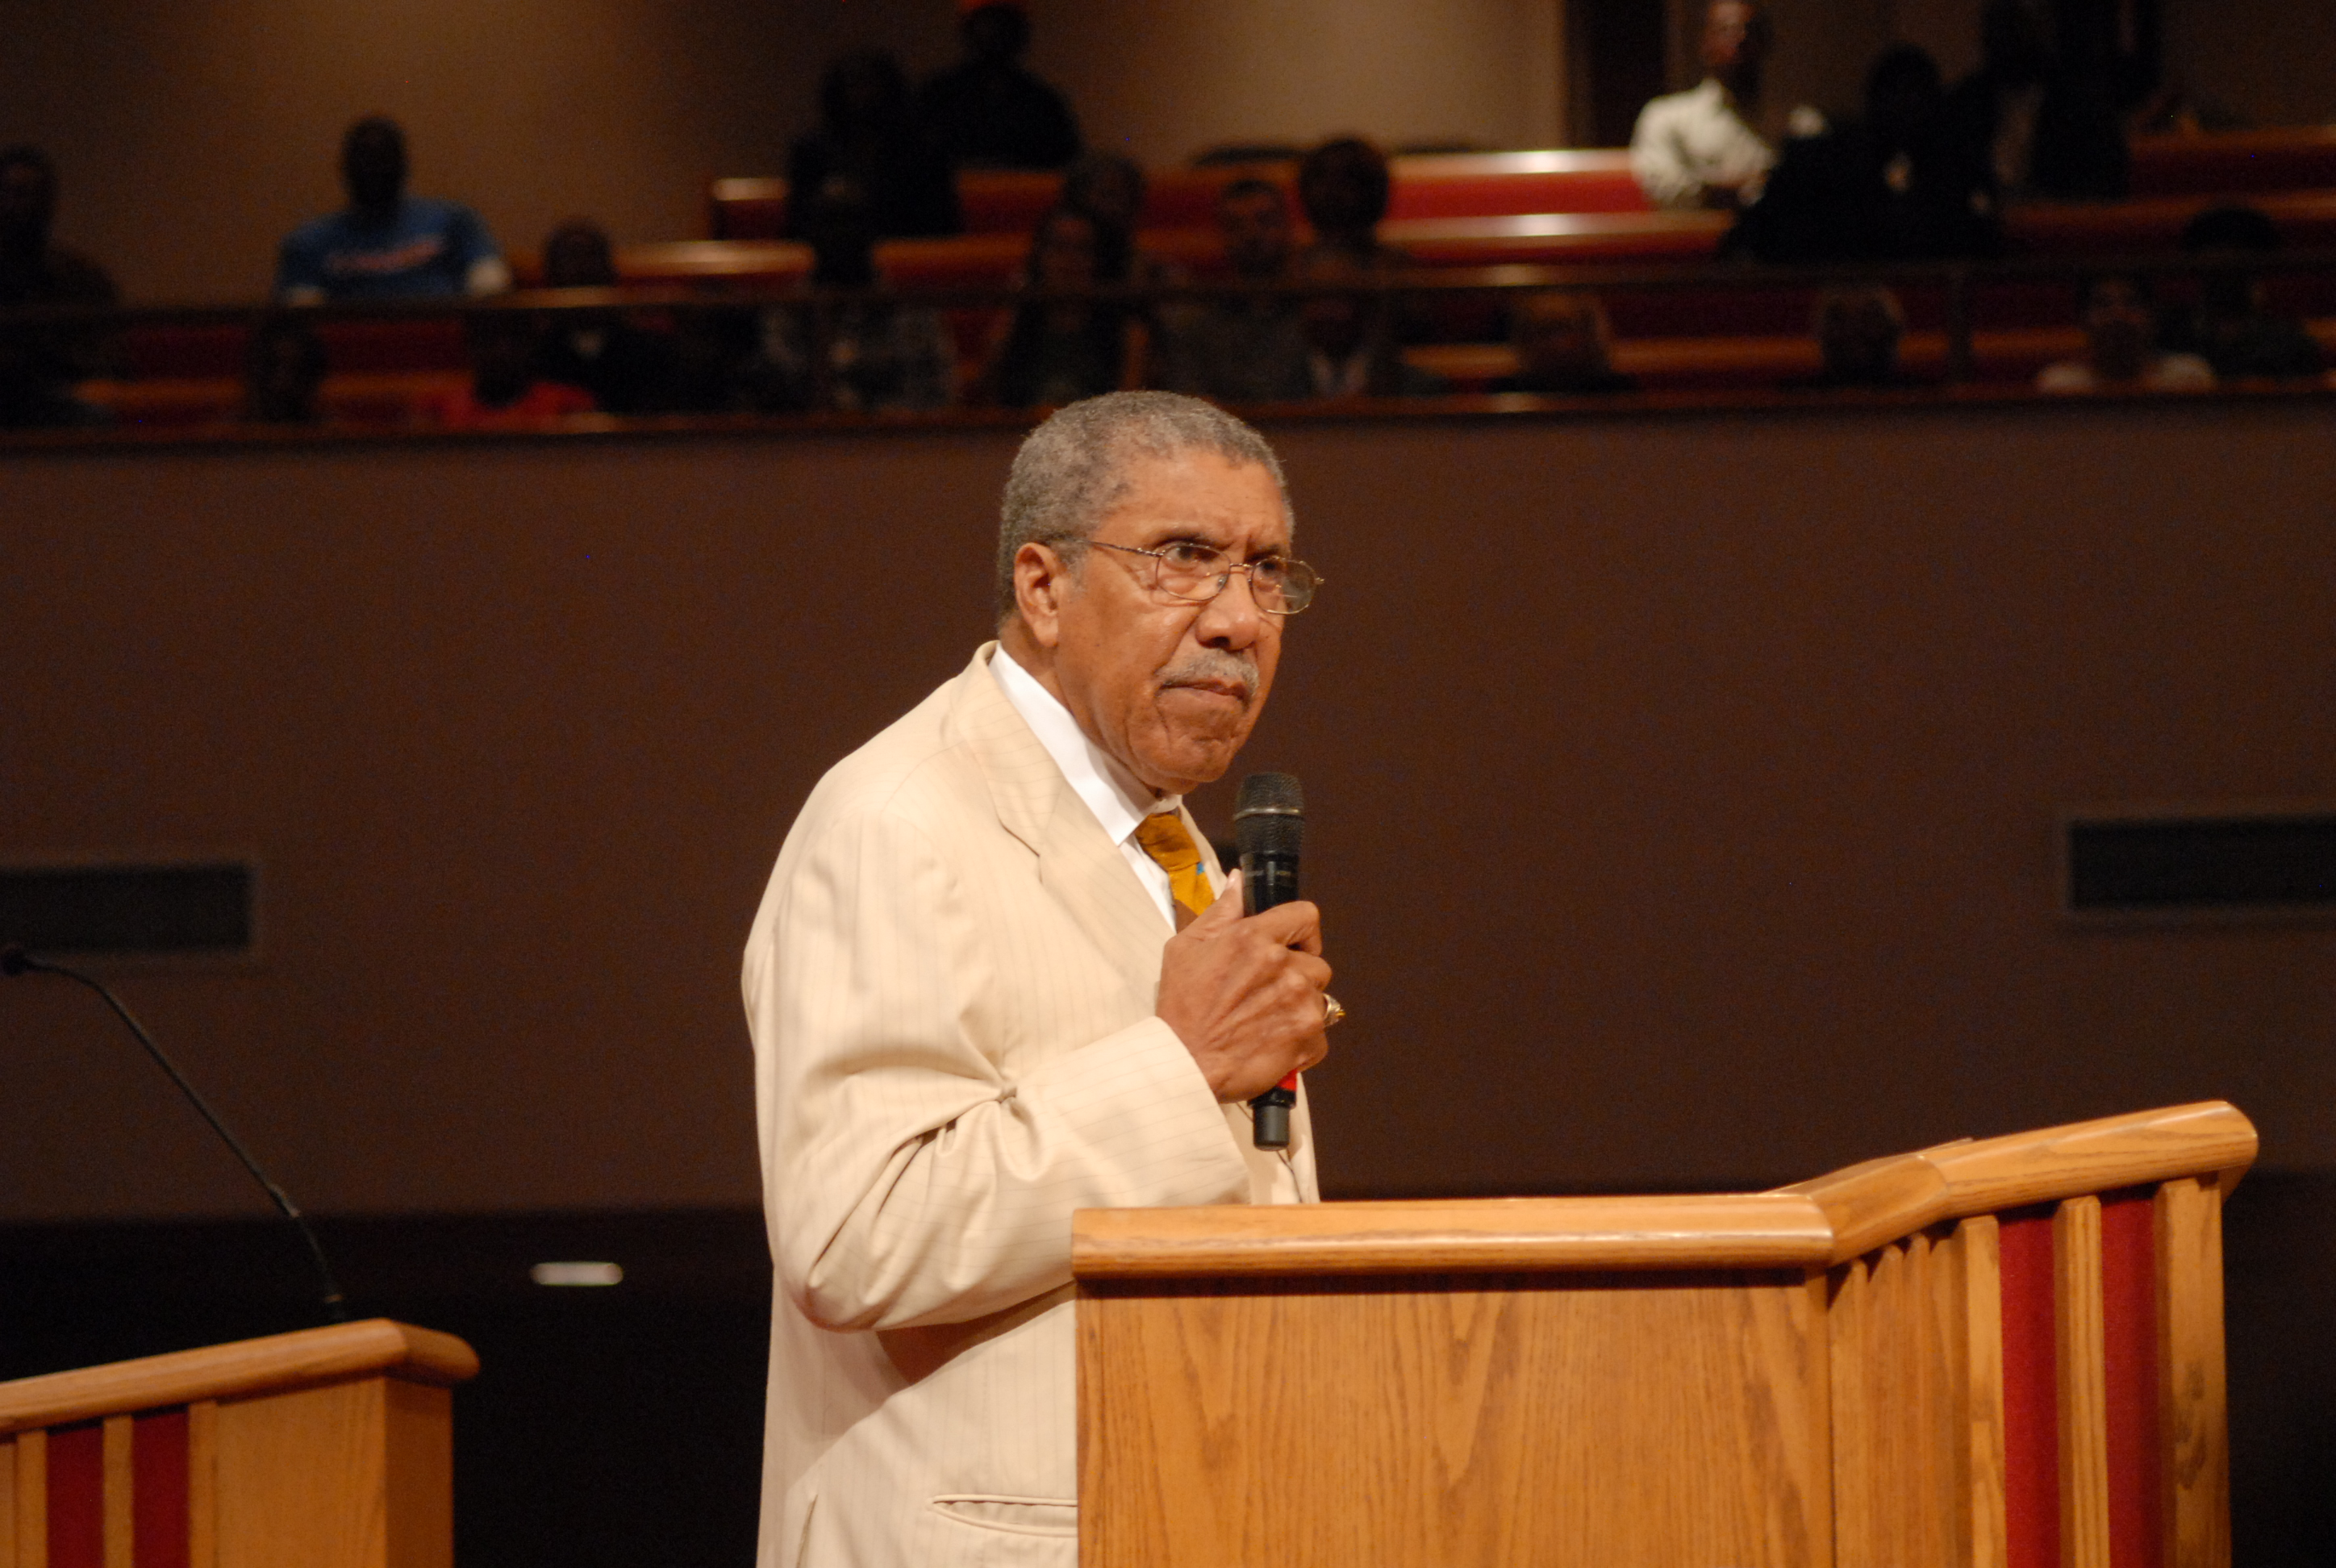 fountain of life records celebrates rev  clay evans at 90 with weekend celebration